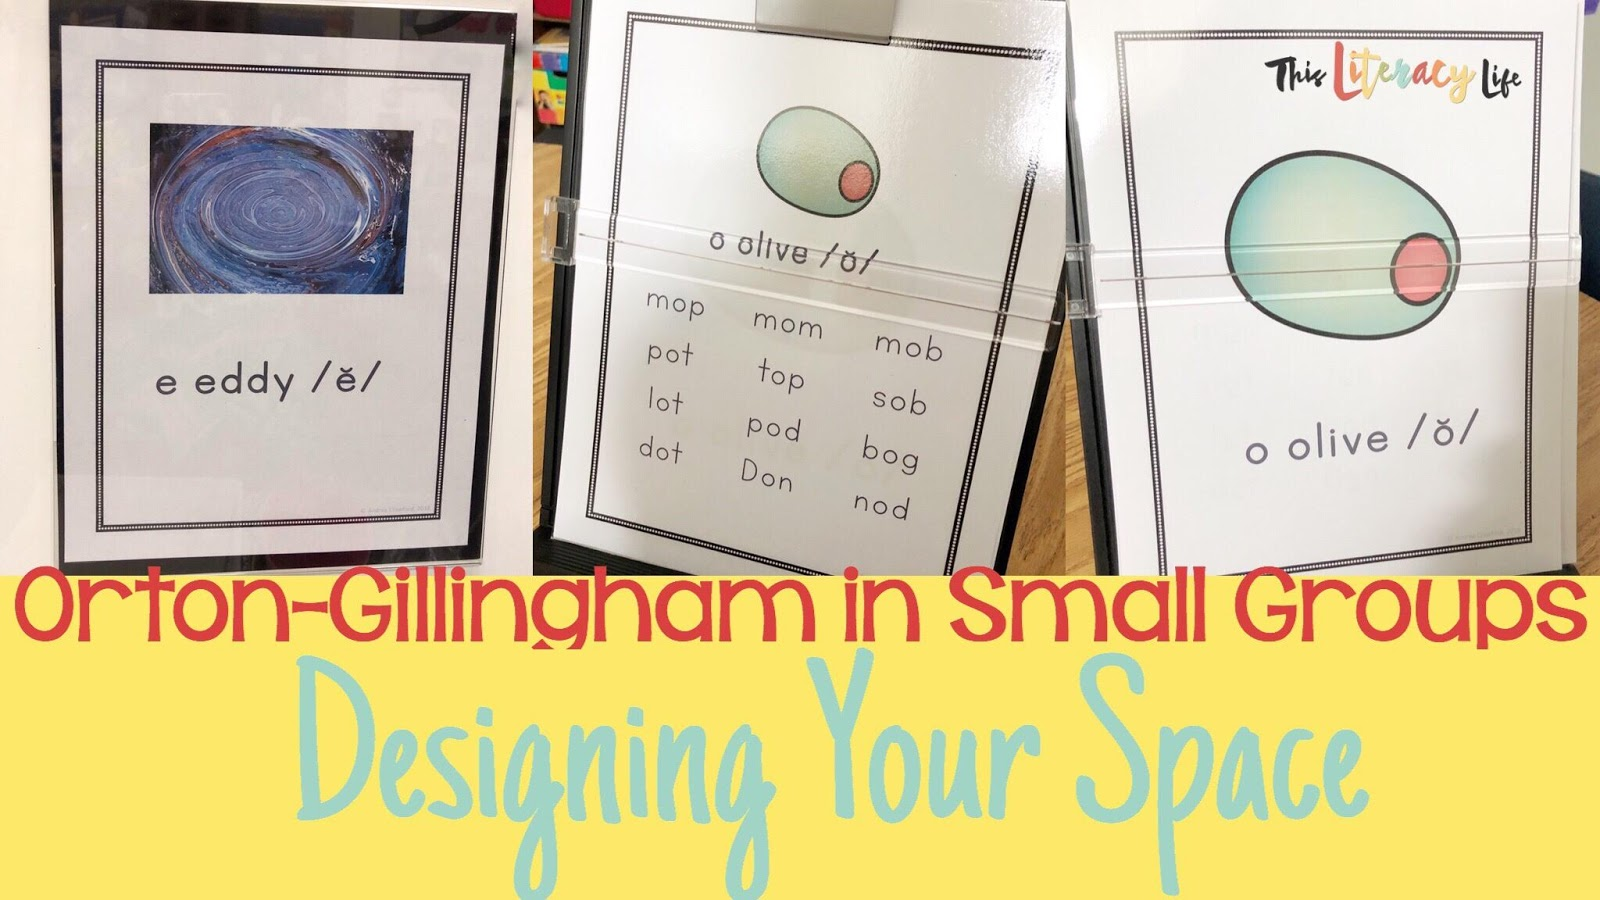 Small spaces can make it tough to display posters for Orton-Gillingham groups. These posters will help as you showcase the rules in a small space.